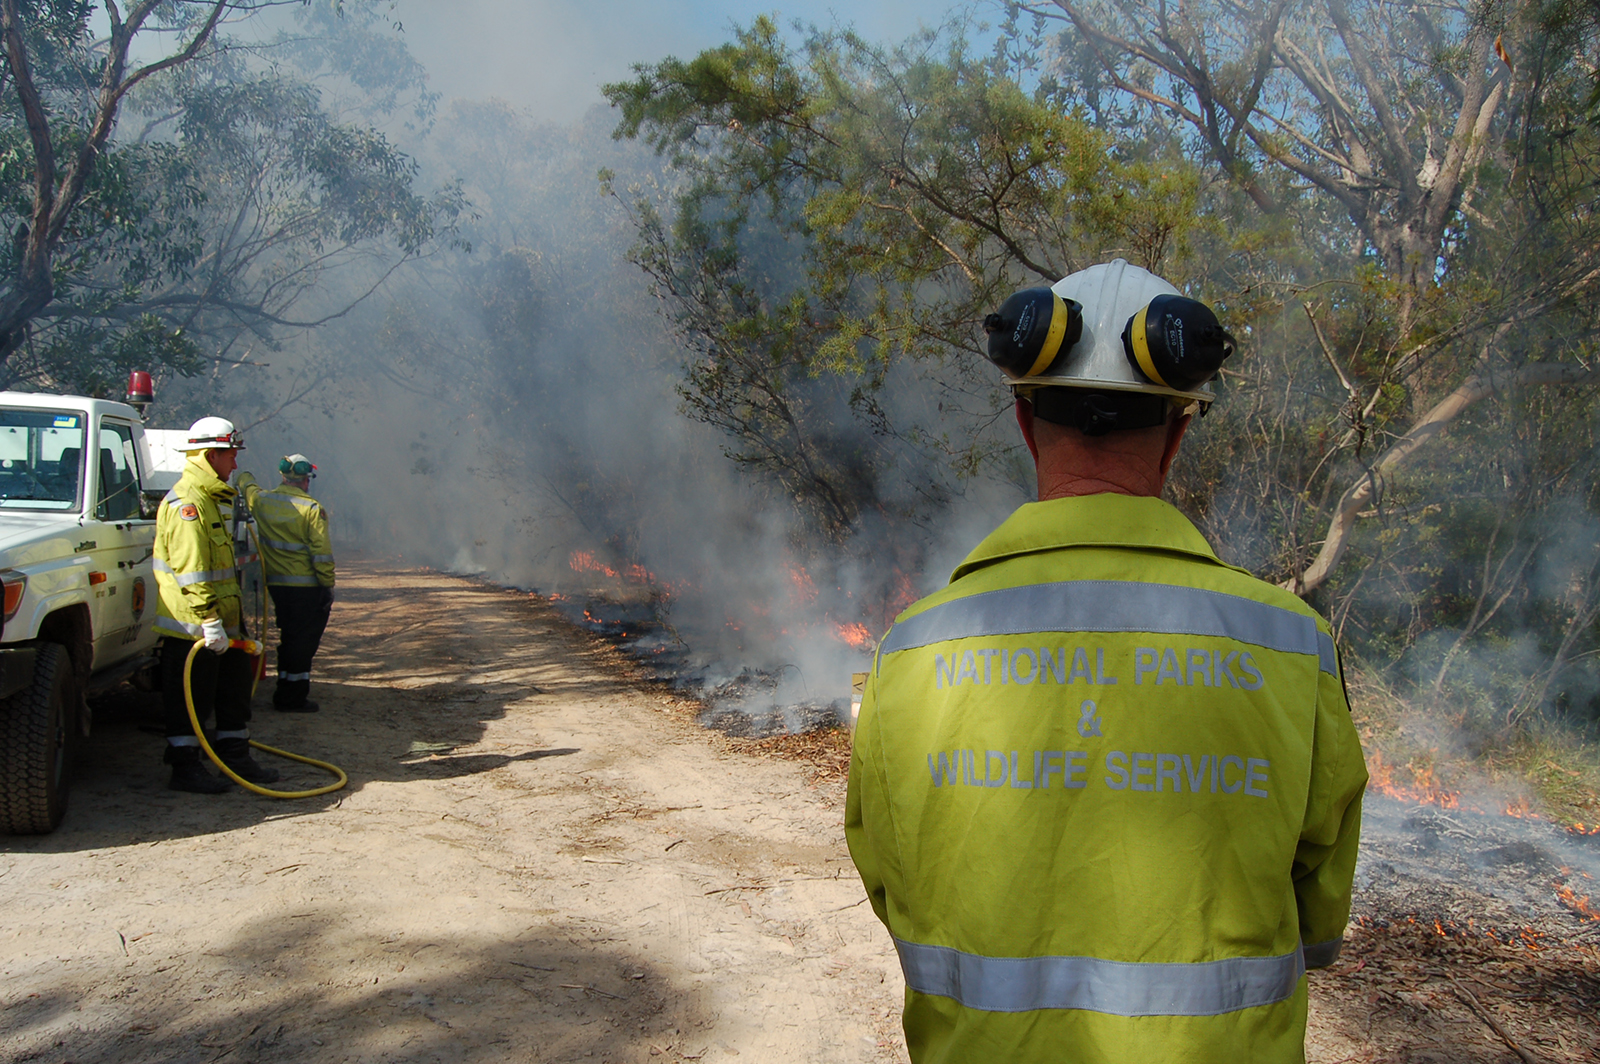 NPWS firefighters conducting planned controlled burning in Brisbane Water National Park. Photo: Susan Davis/OEH